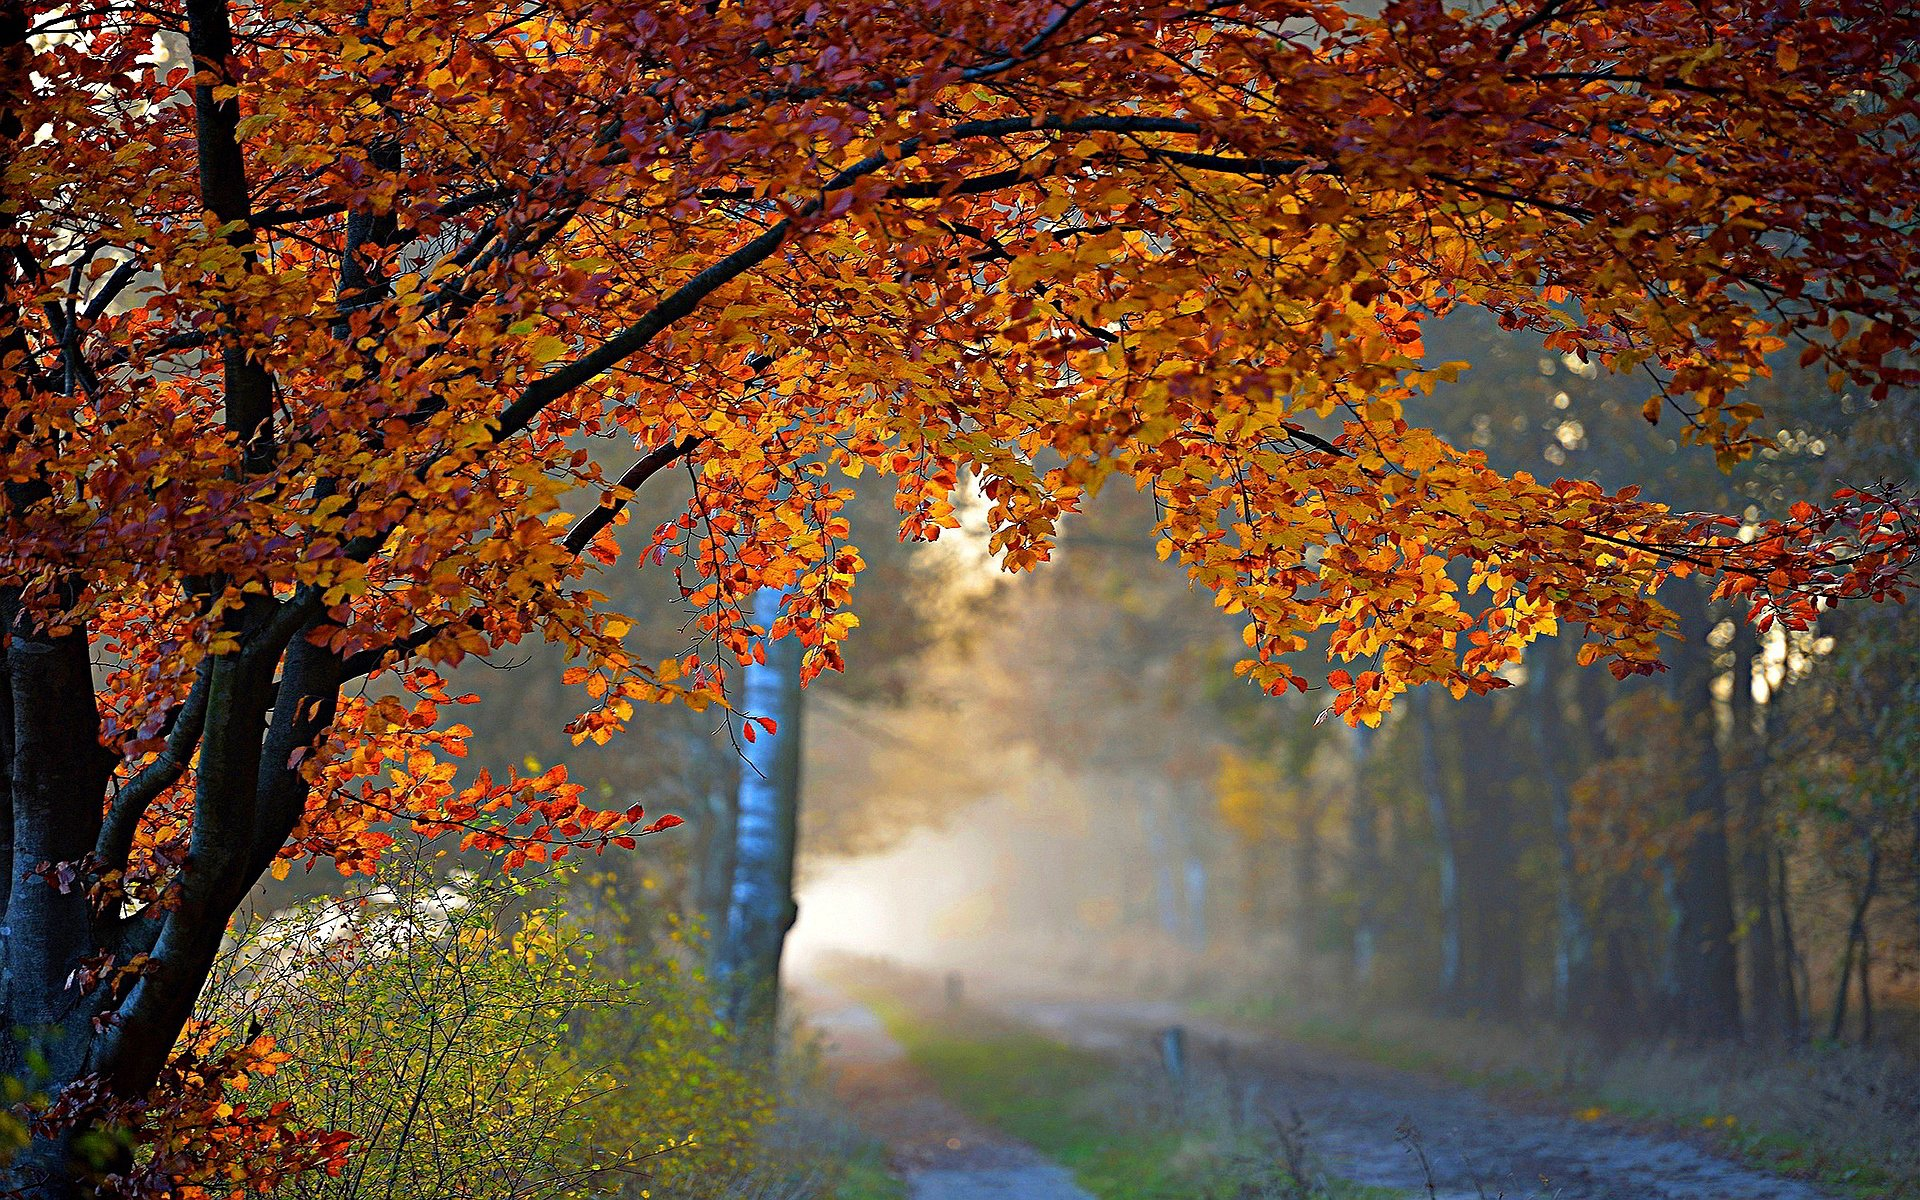 Autumn Tree Wallpaper 61 Images: Autumn Tree In Misty Forest HD Wallpaper